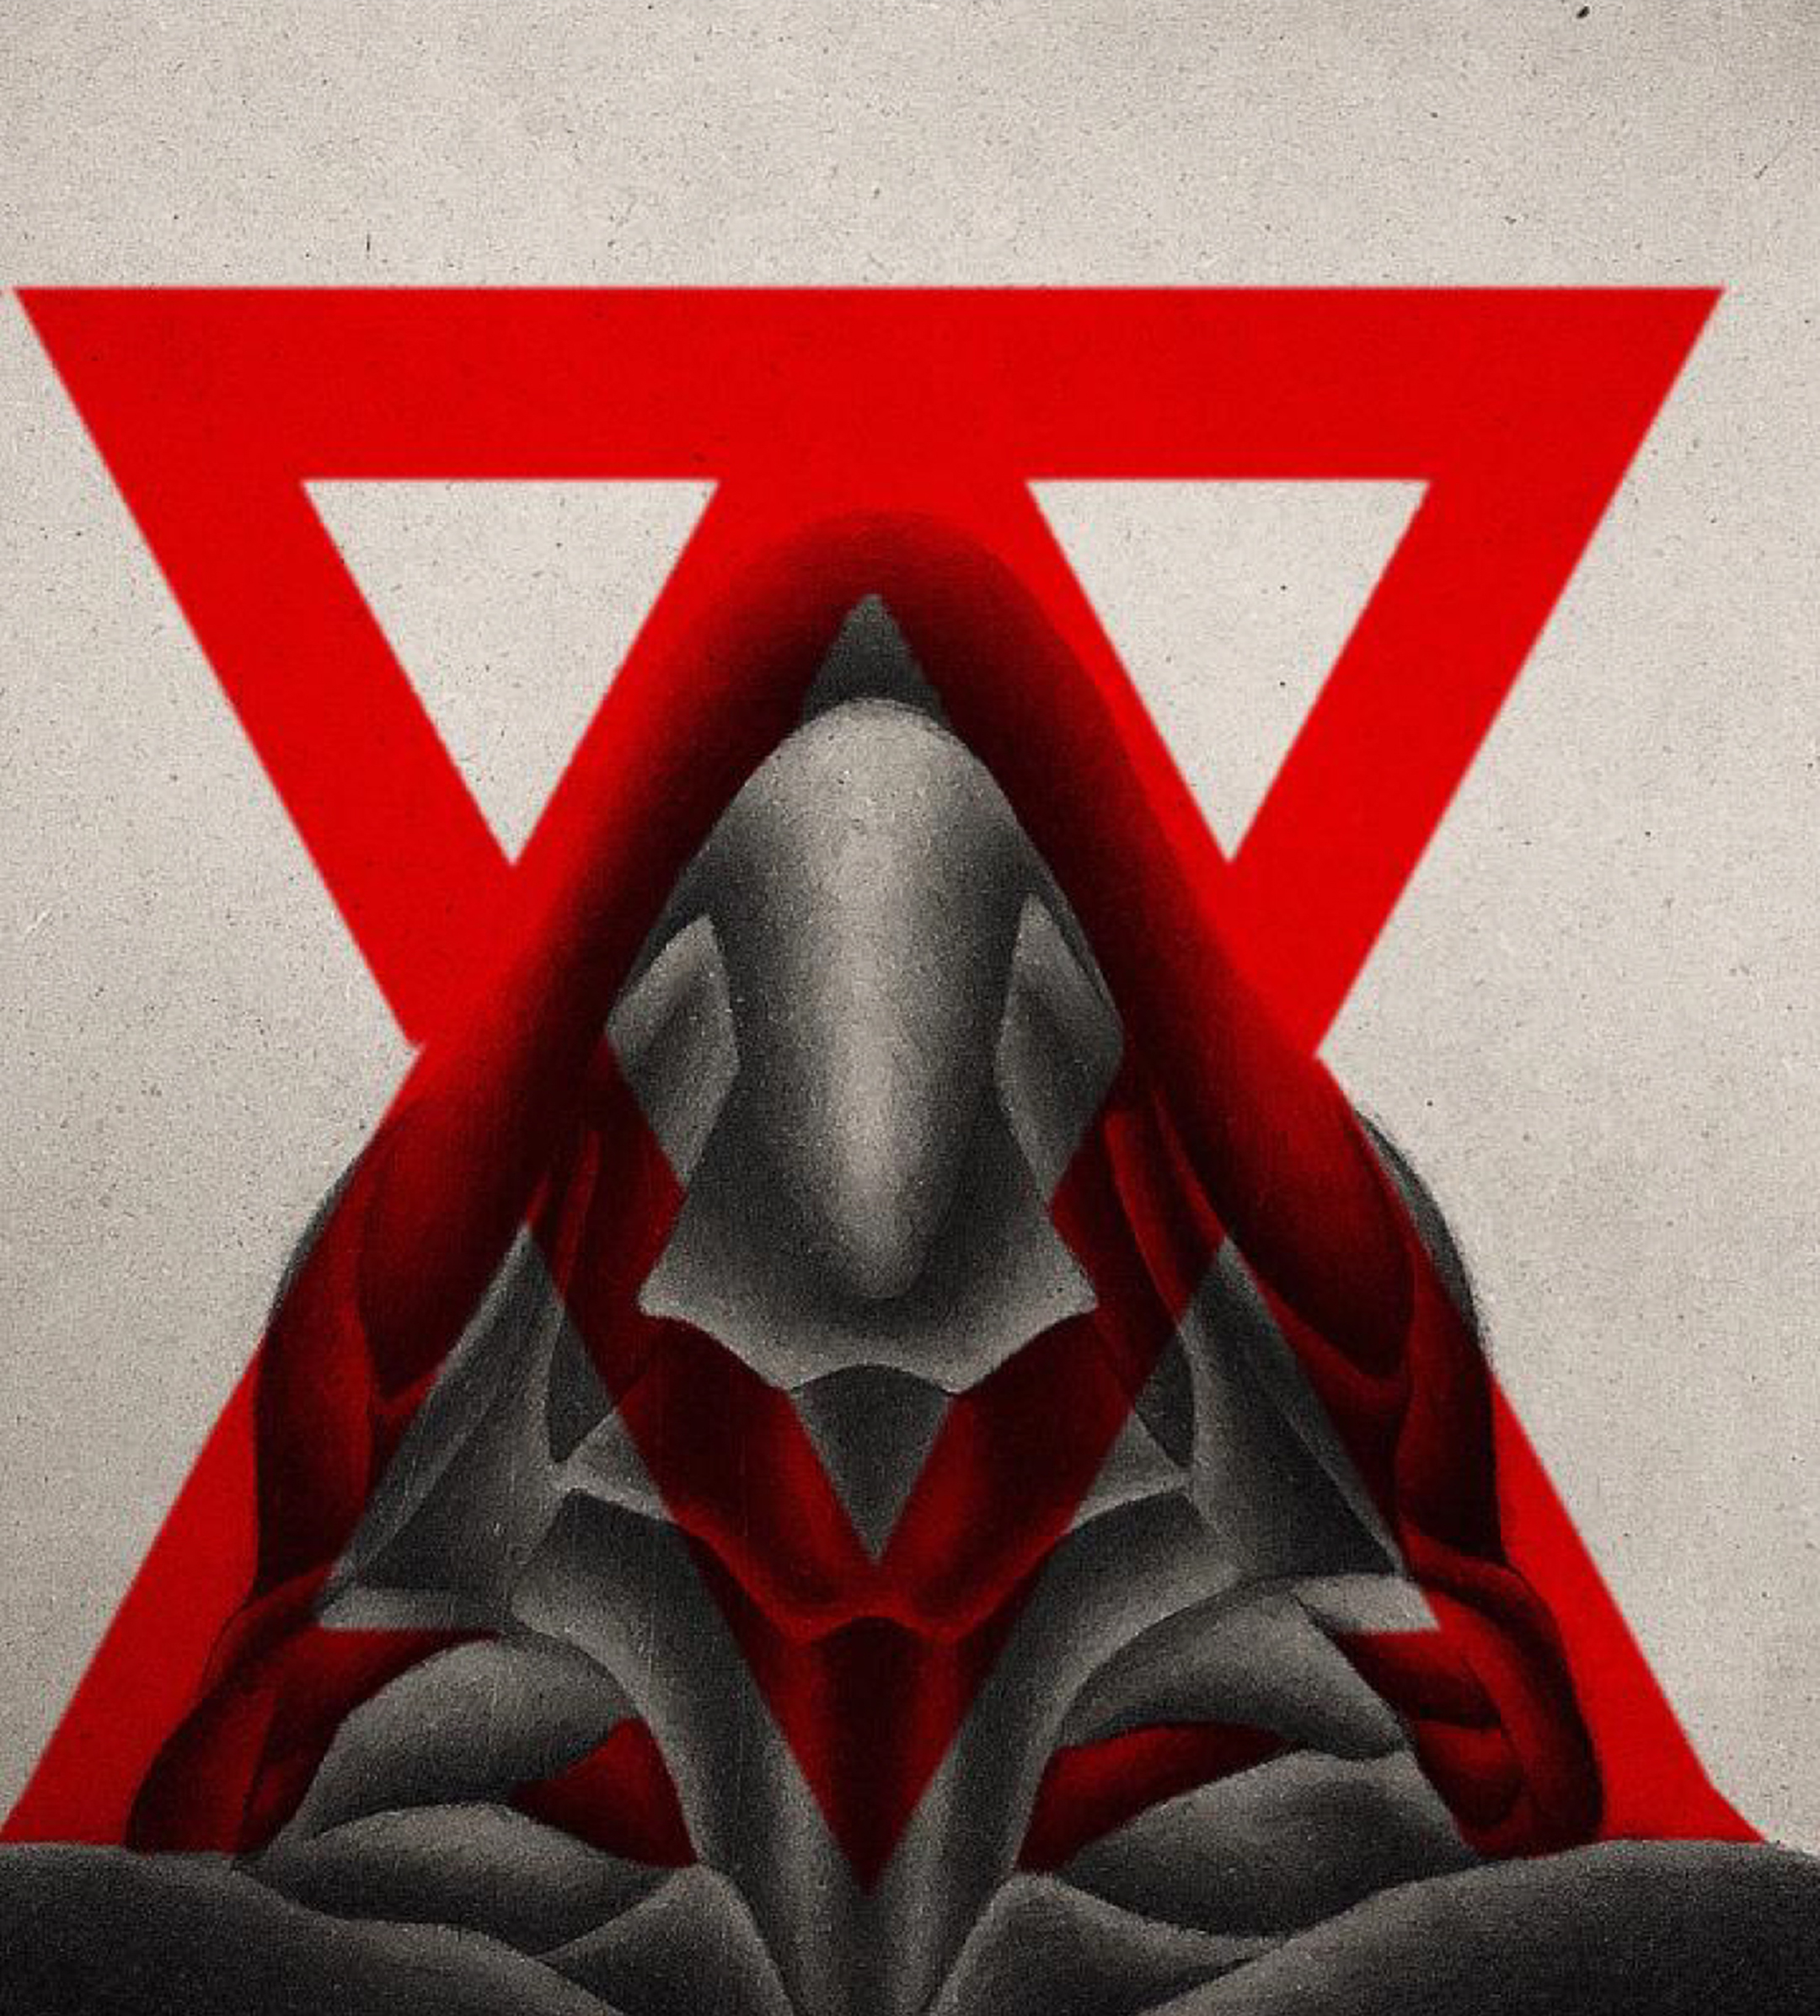 Painting of an abstract, lump-like figure, positioned in a triangle formation, with two red triangles printed overtop